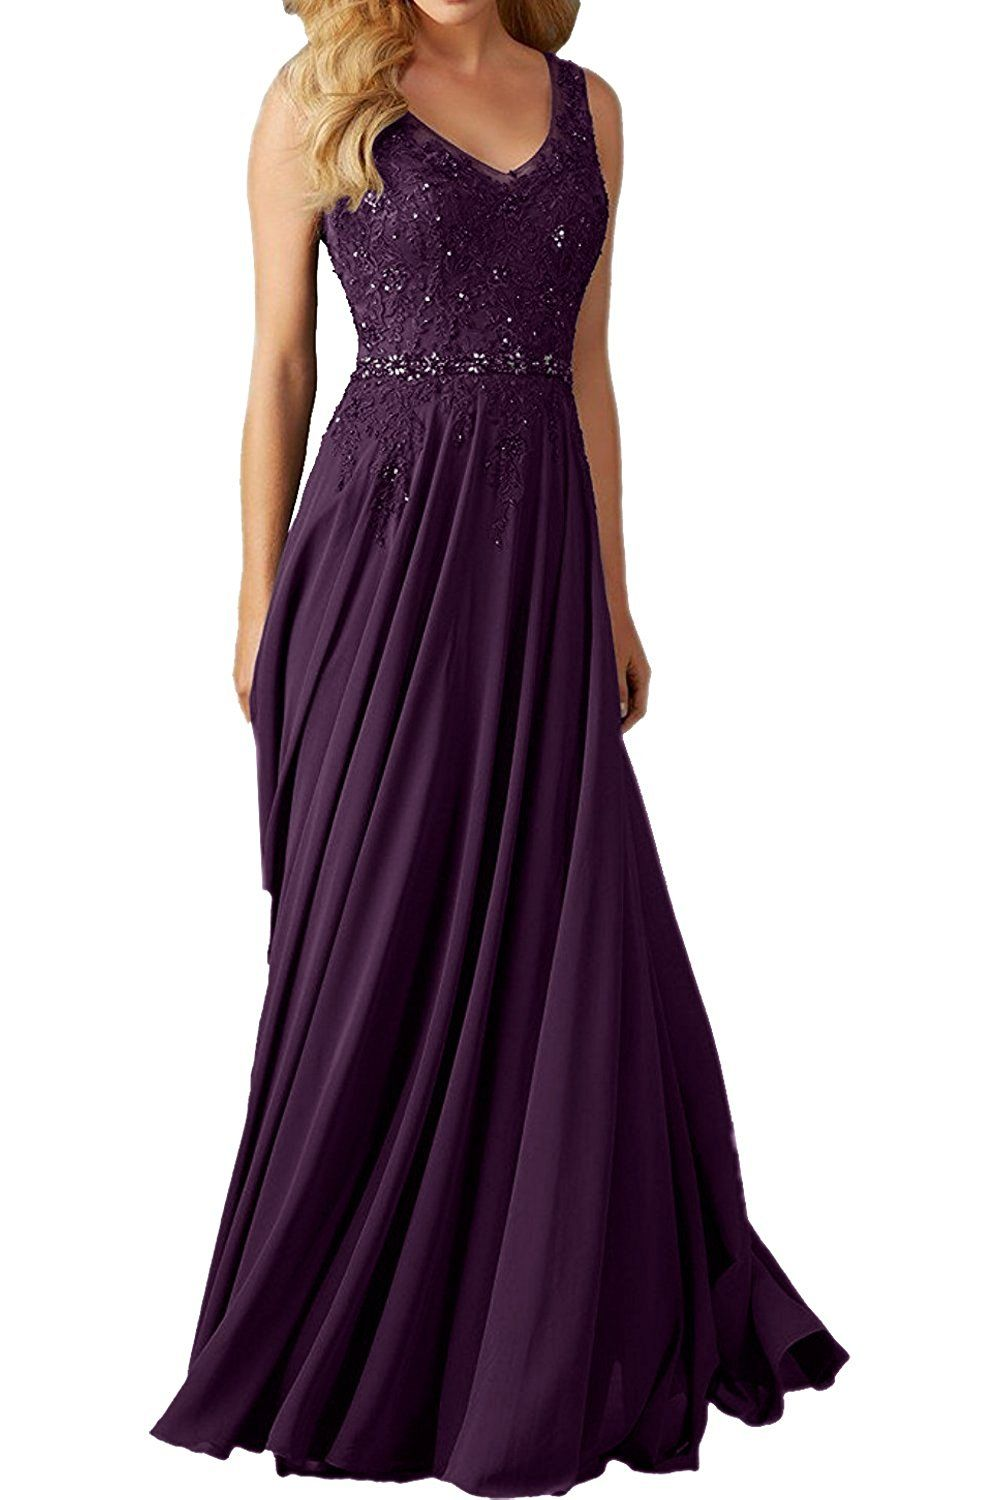 Milano bride inexpensive bridesmaid dress prom maxi dress vneck a